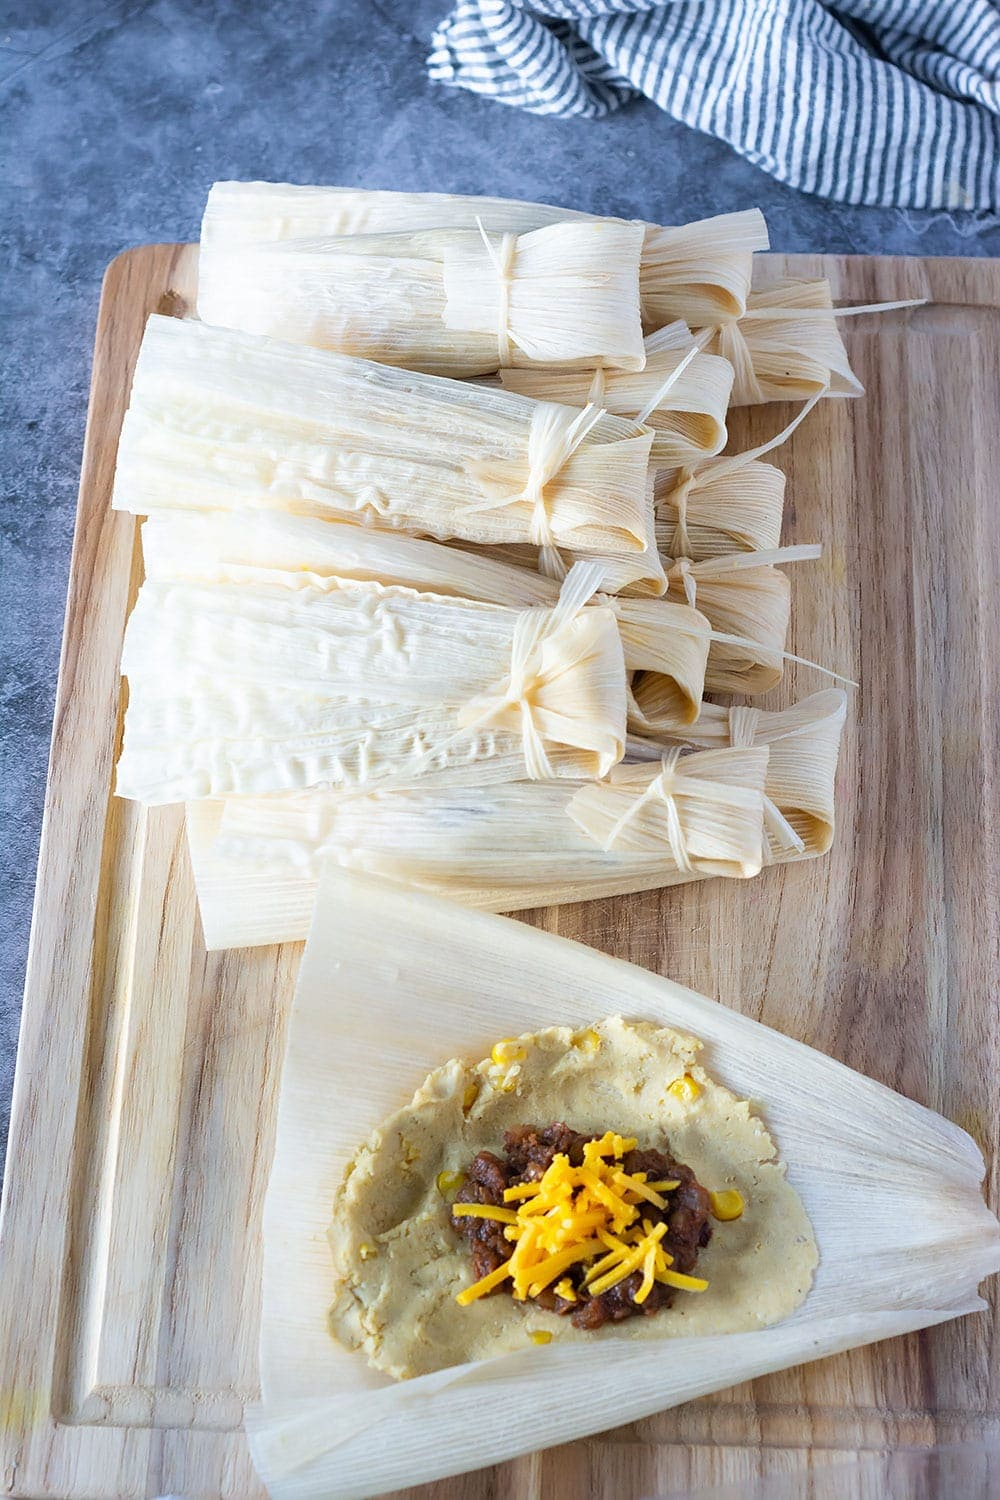 Making tamales, tamales in corn husks on a cutting board